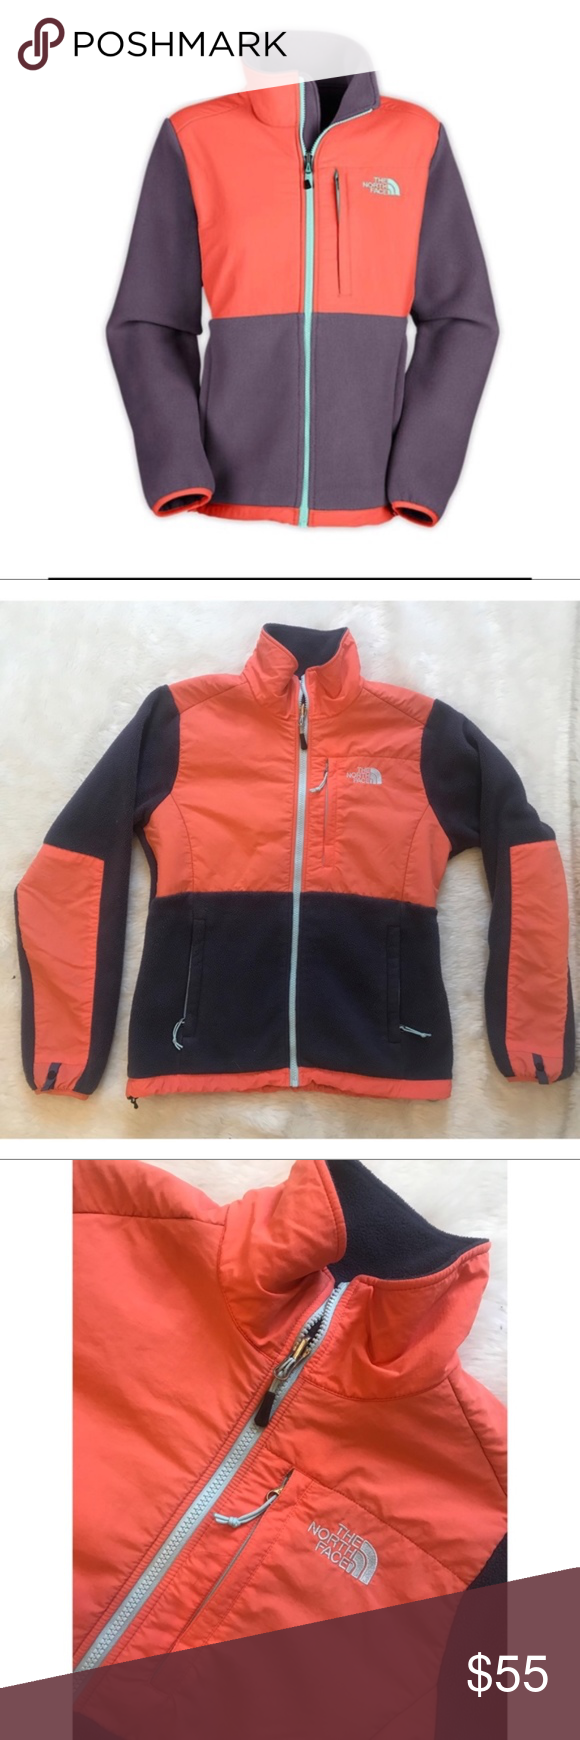 The north face denali zip up fleece jacket small pinterest